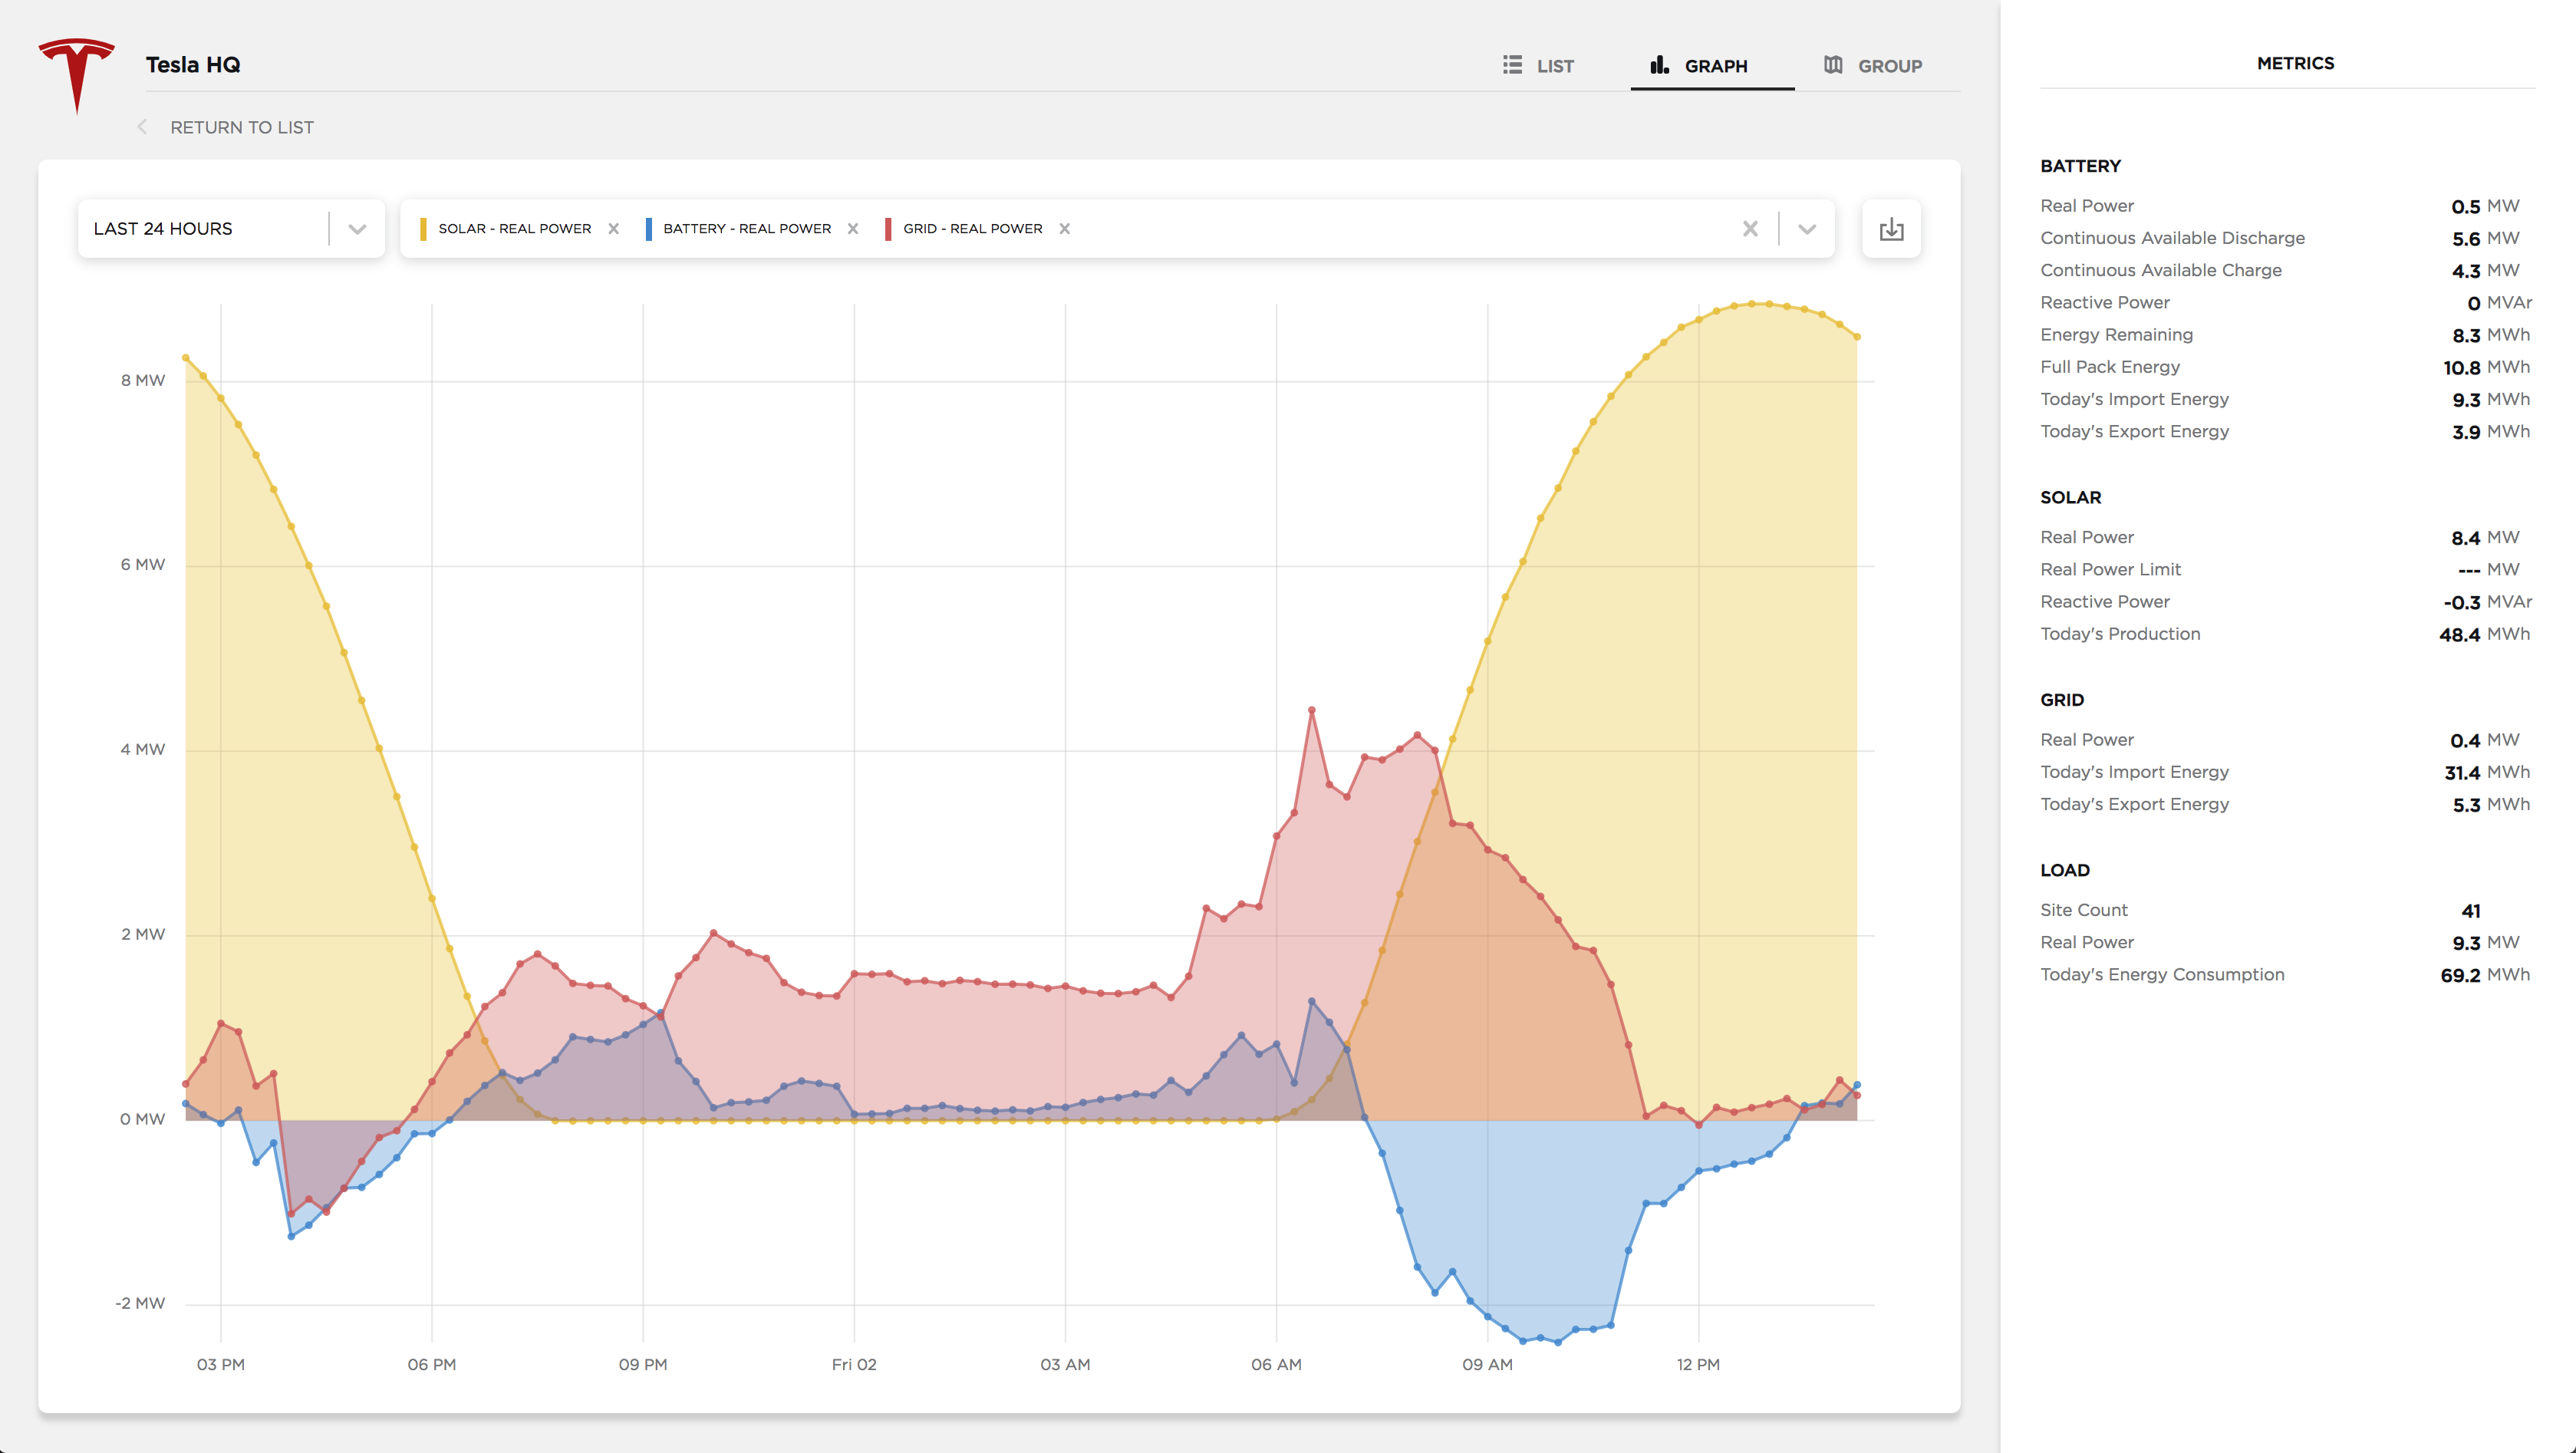 Powerhub graph view